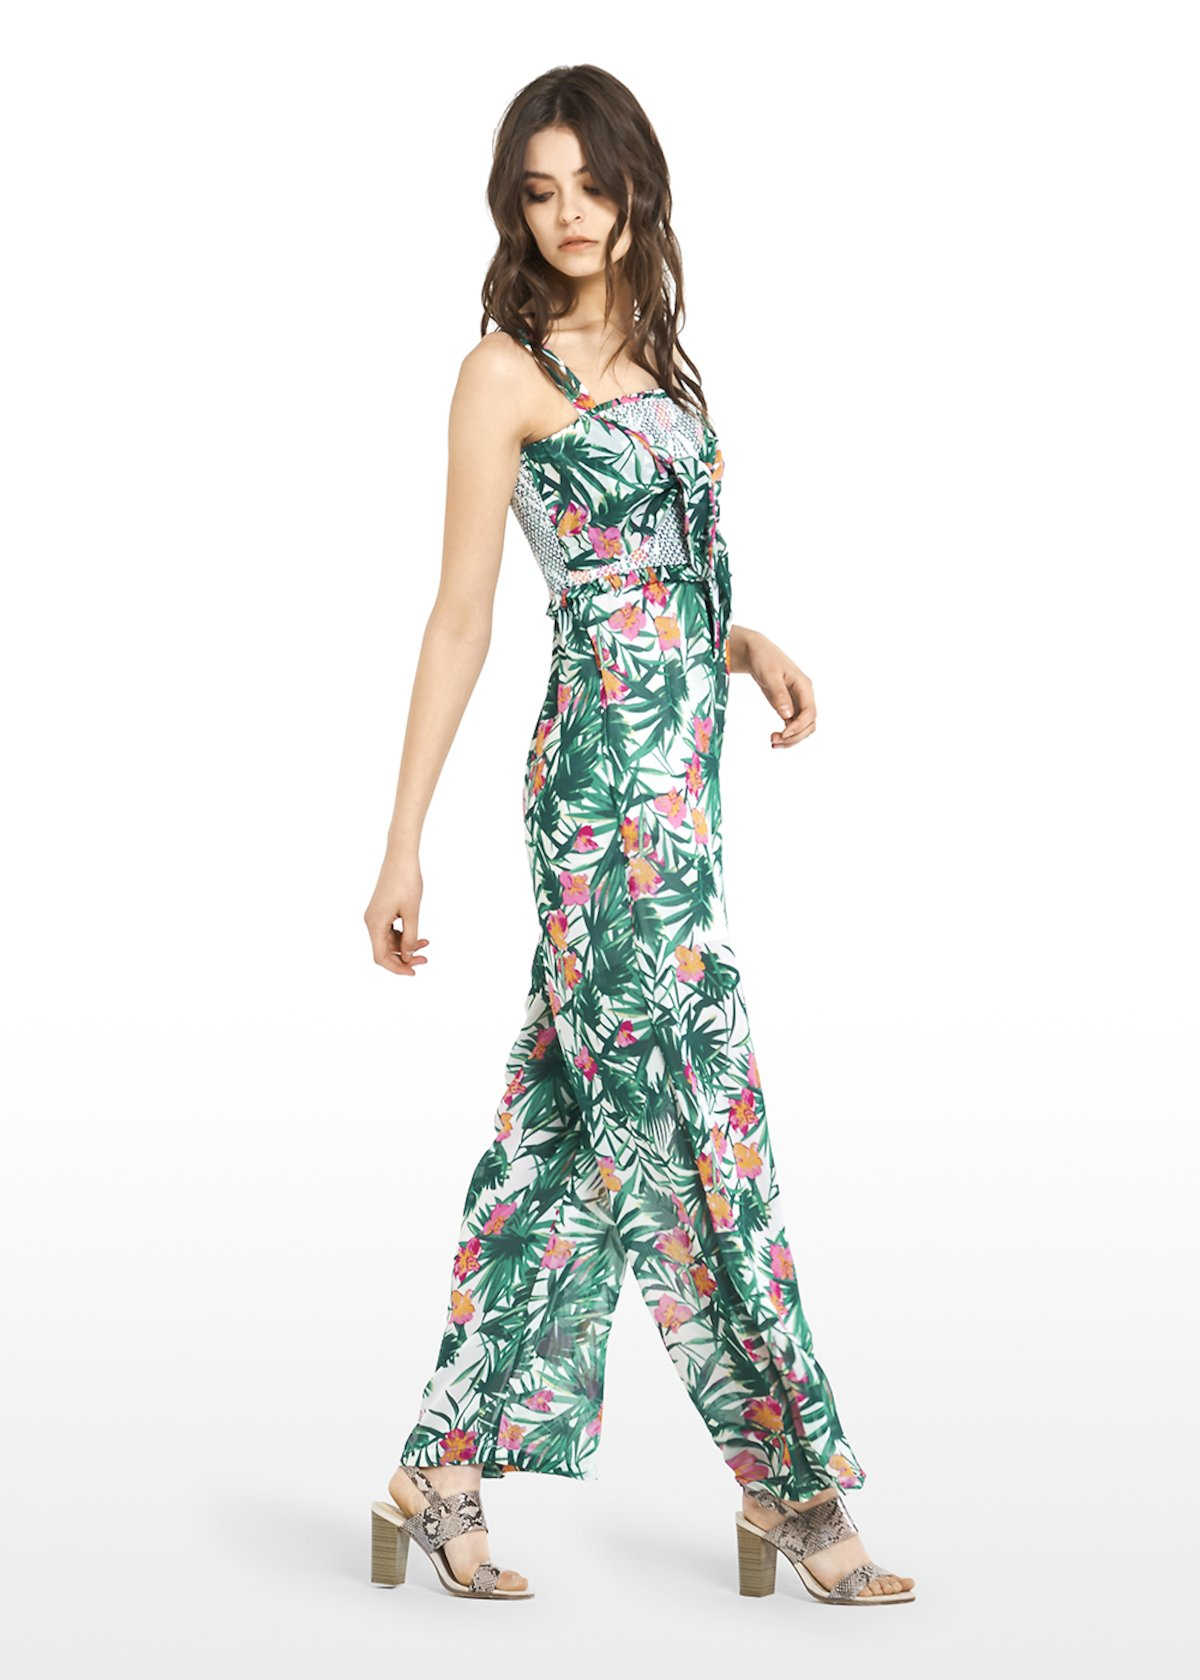 Tiger georgette jumpsuit with bow detail - White\ Amazon\ Fantasia - Woman